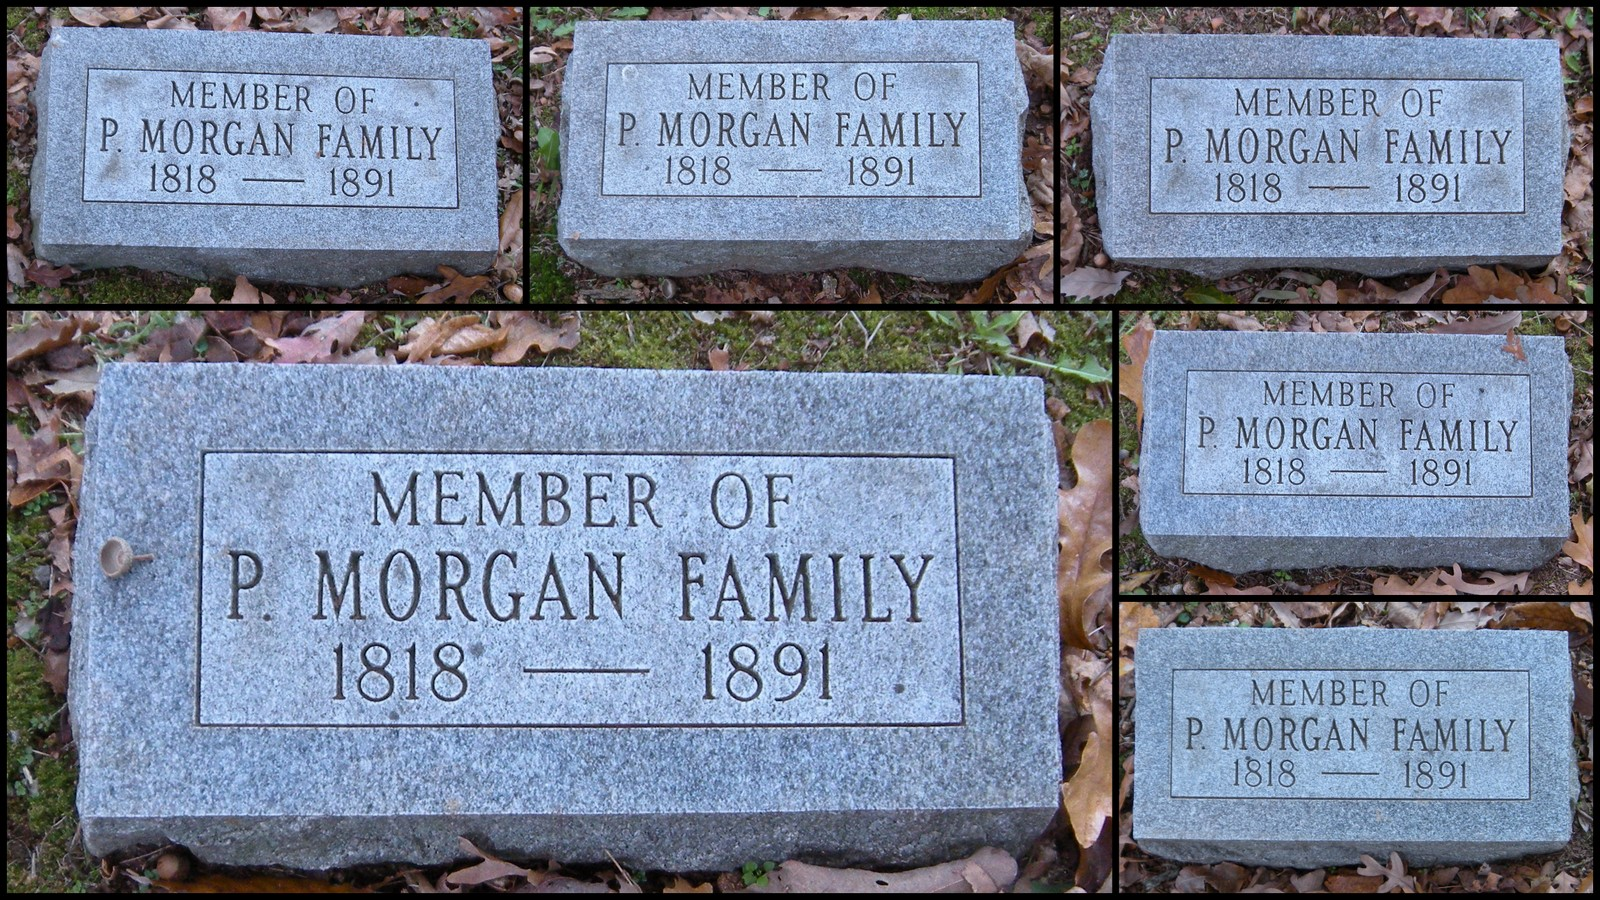 Siloam Springs (AR) United States  City pictures : gill cemetery crawford county arkansas and Journals Online